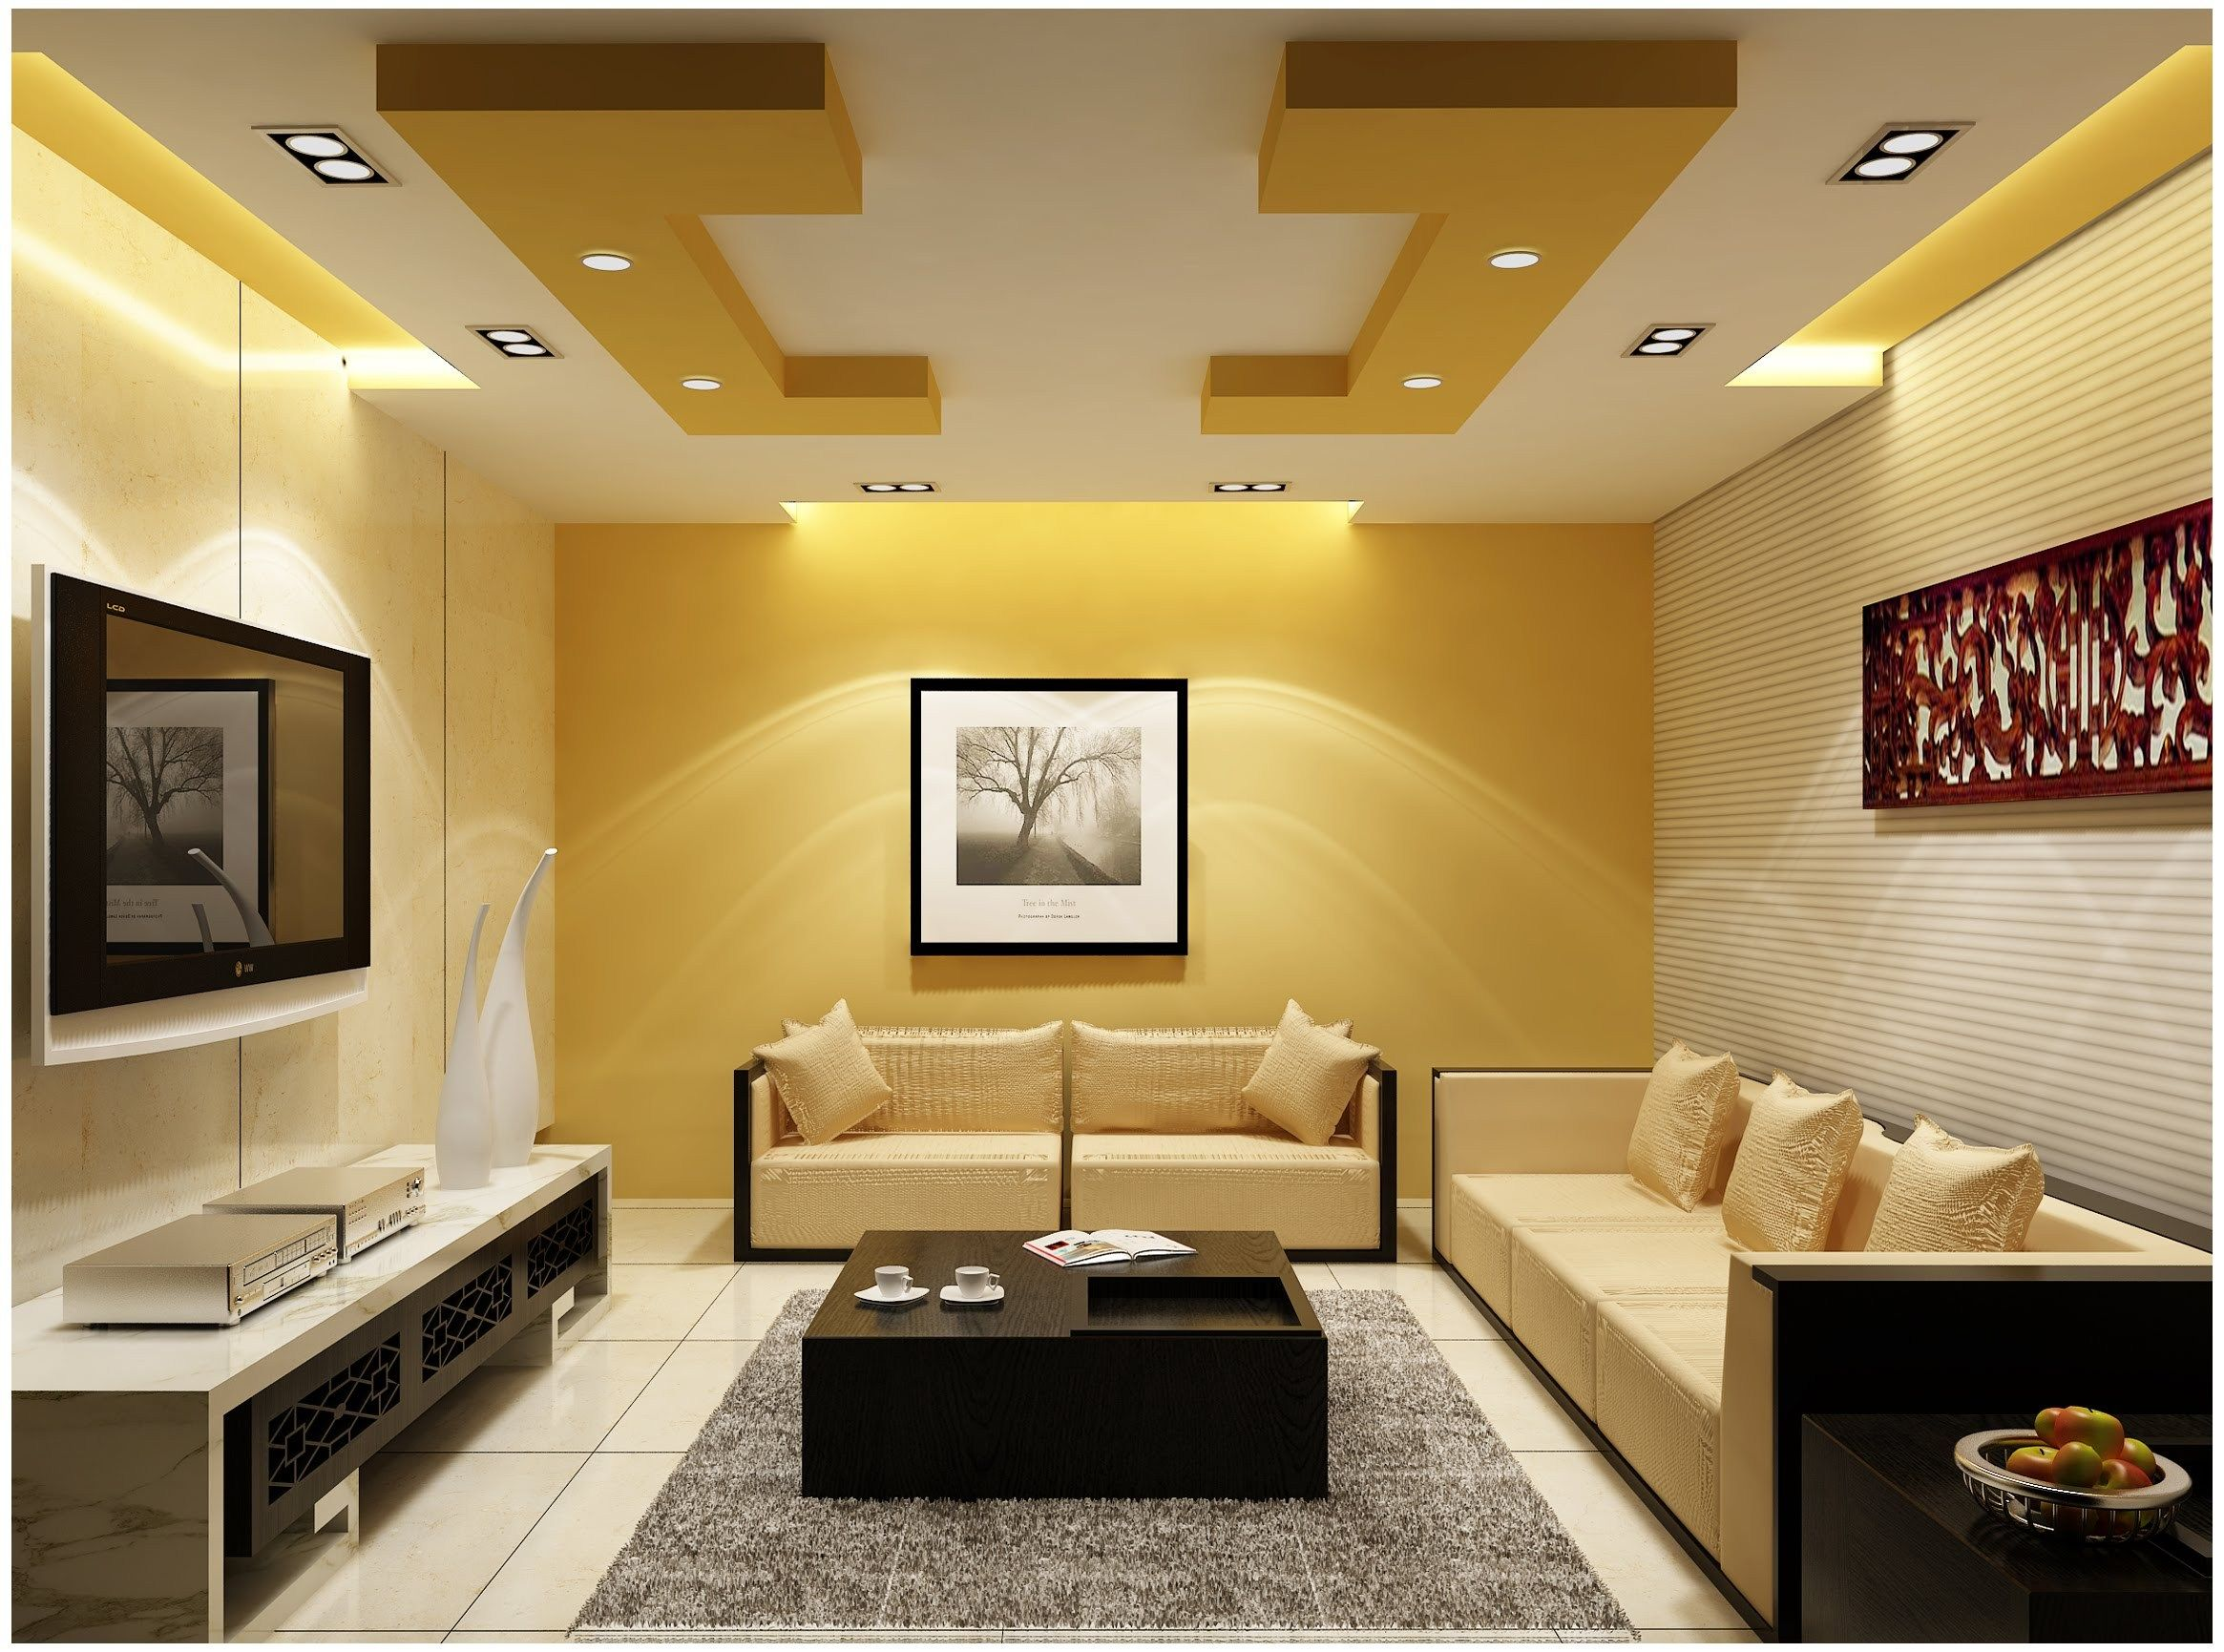 Ceiling Design For Small Room Pin By Irfan Kazi On False Ceiling Ideas False Ceiling